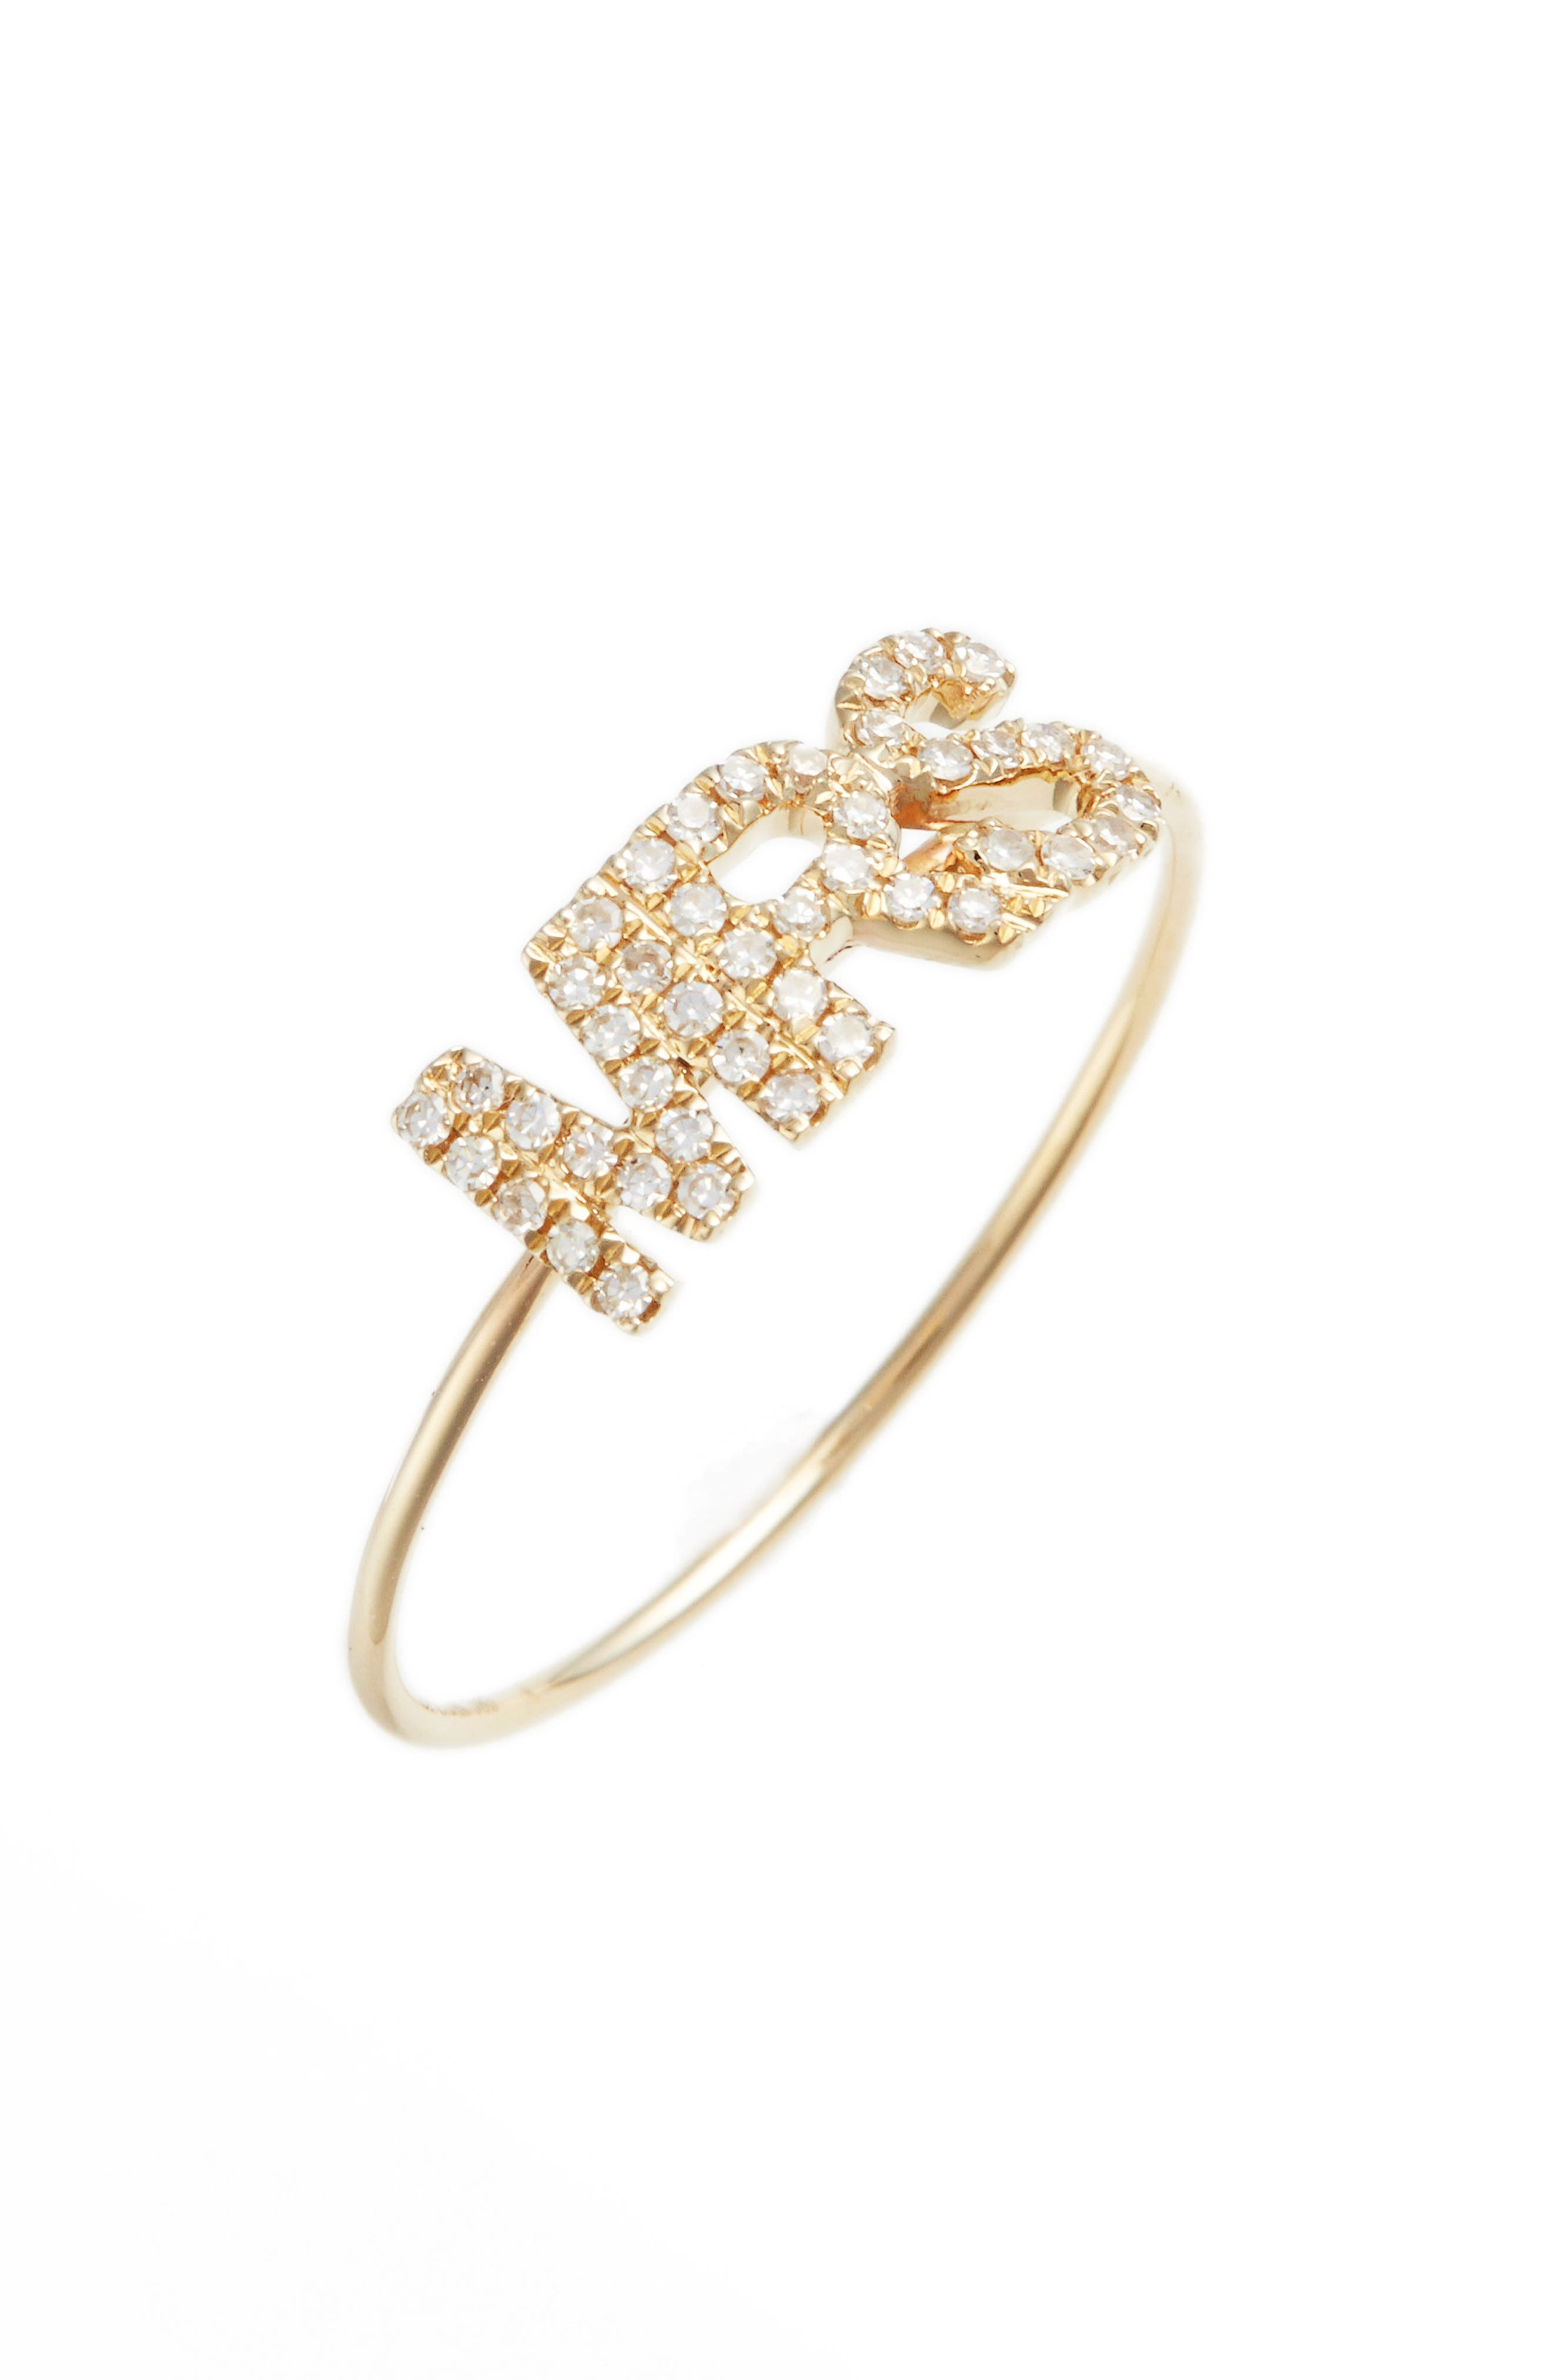 Mrs. Diamond Ring,                         Main,                         color, Yellow Gold